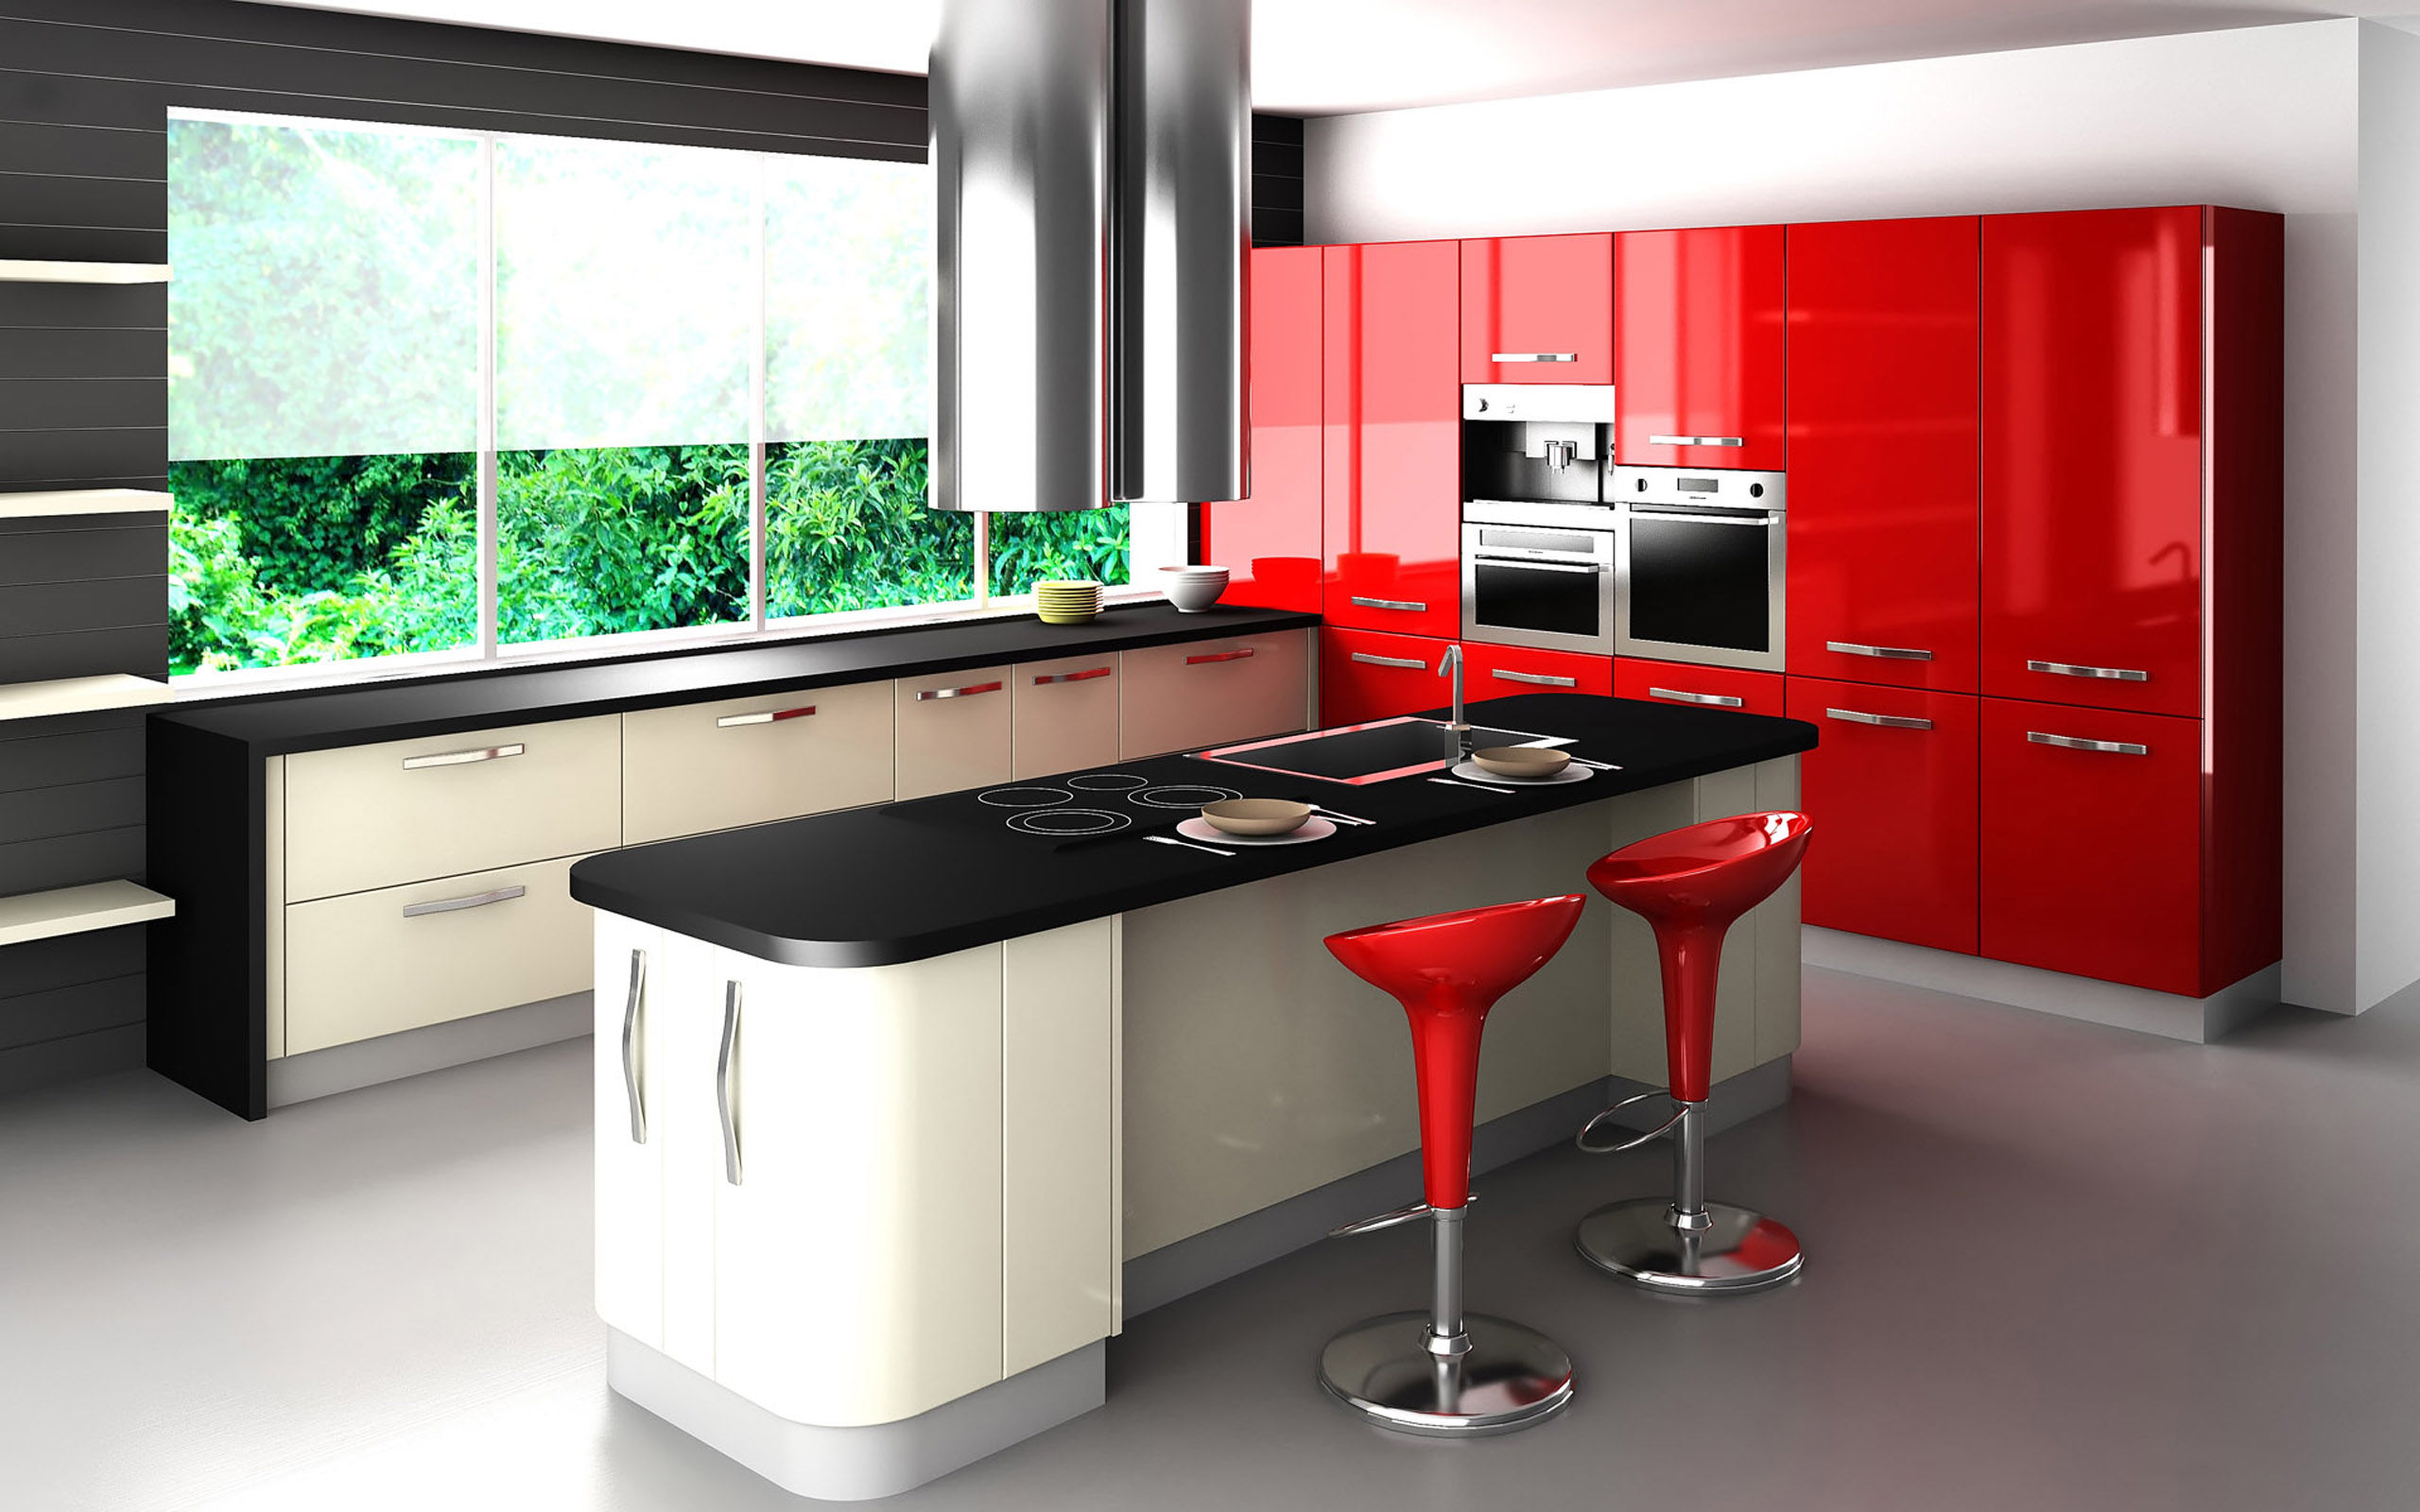 Red Kitchen Design Elegant Red Kitchen Design Pictures Photos And Images For